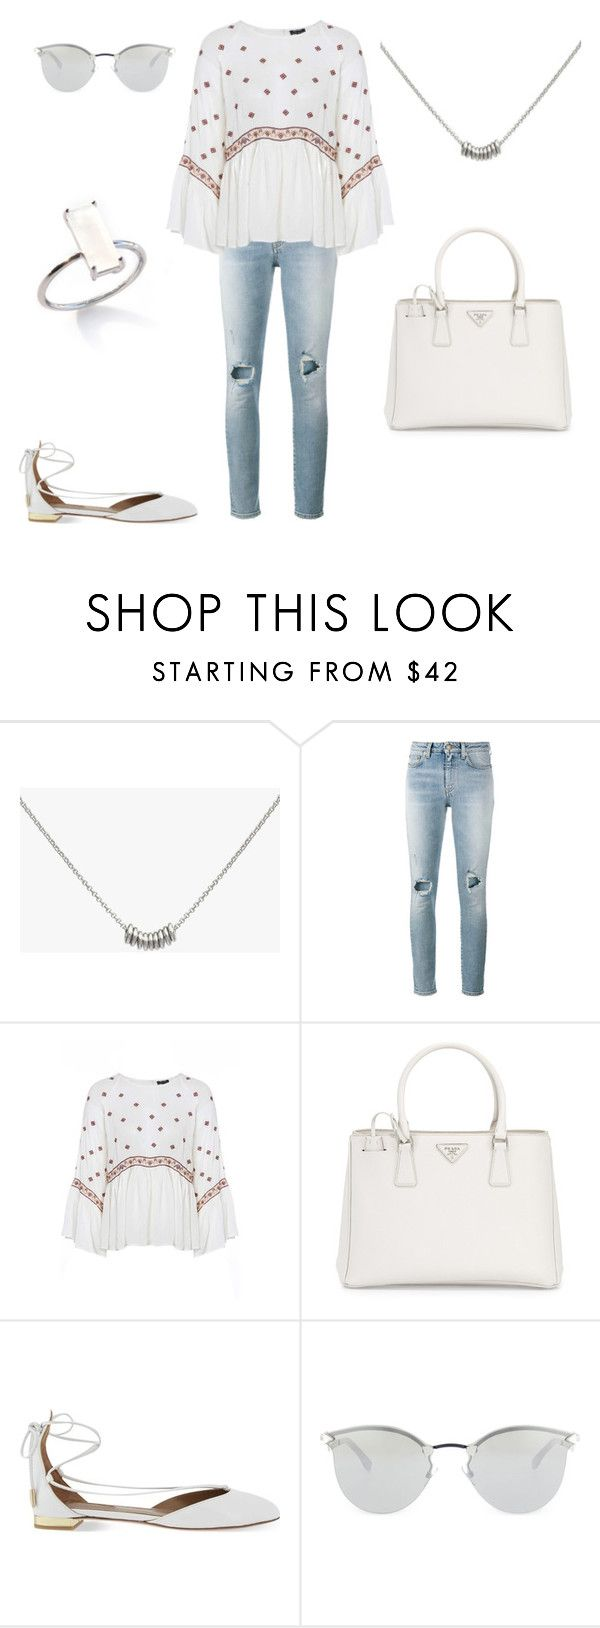 """""""Spring Weekend Look"""" by bshujewelry ❤ liked on Polyvore featuring Yves Saint Laurent, Prada, Aquazzura and Fendi"""